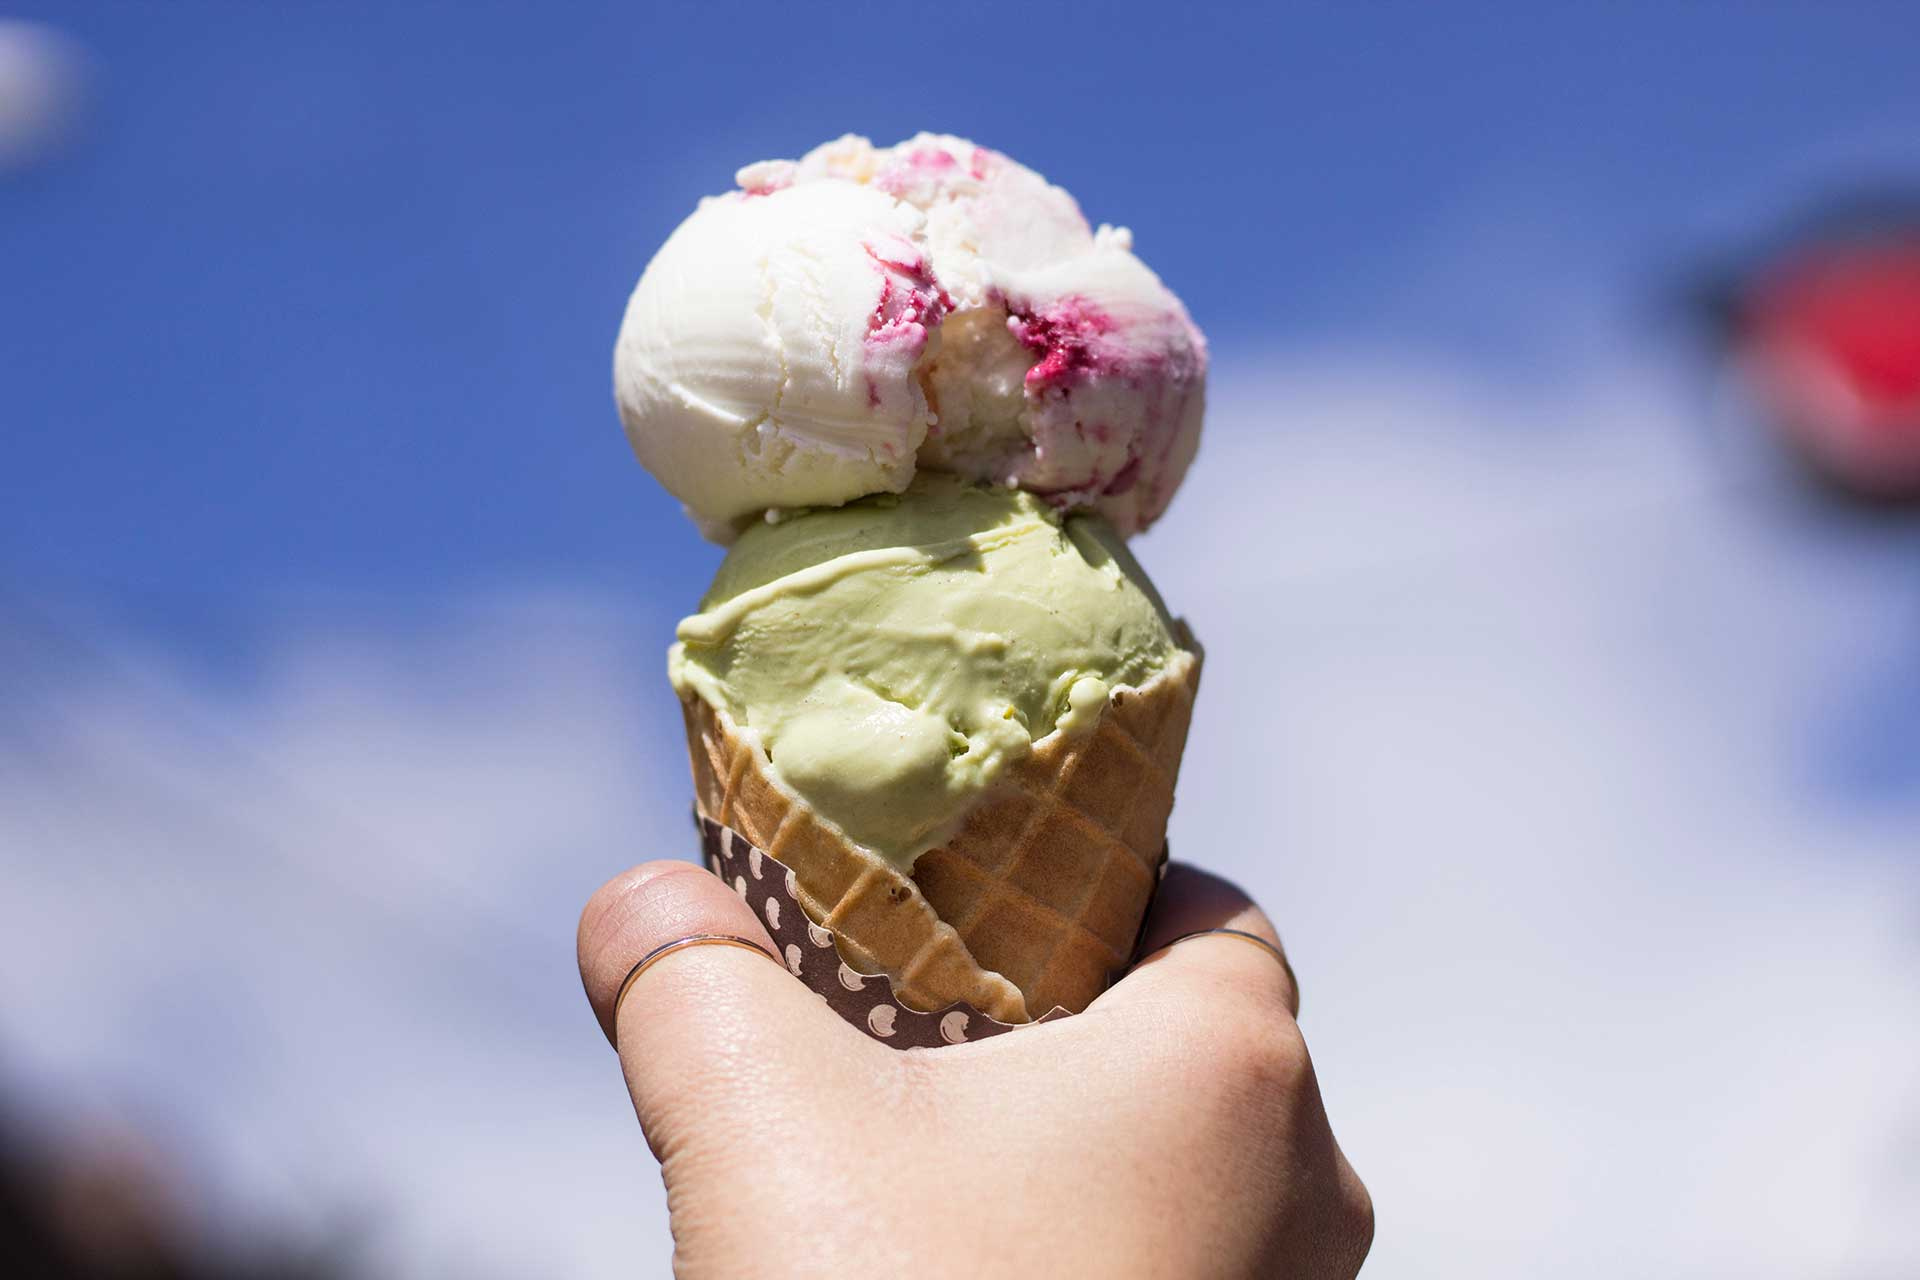 a hand holding a waffle cone with a scoop of pink and a scoop of green ice cream